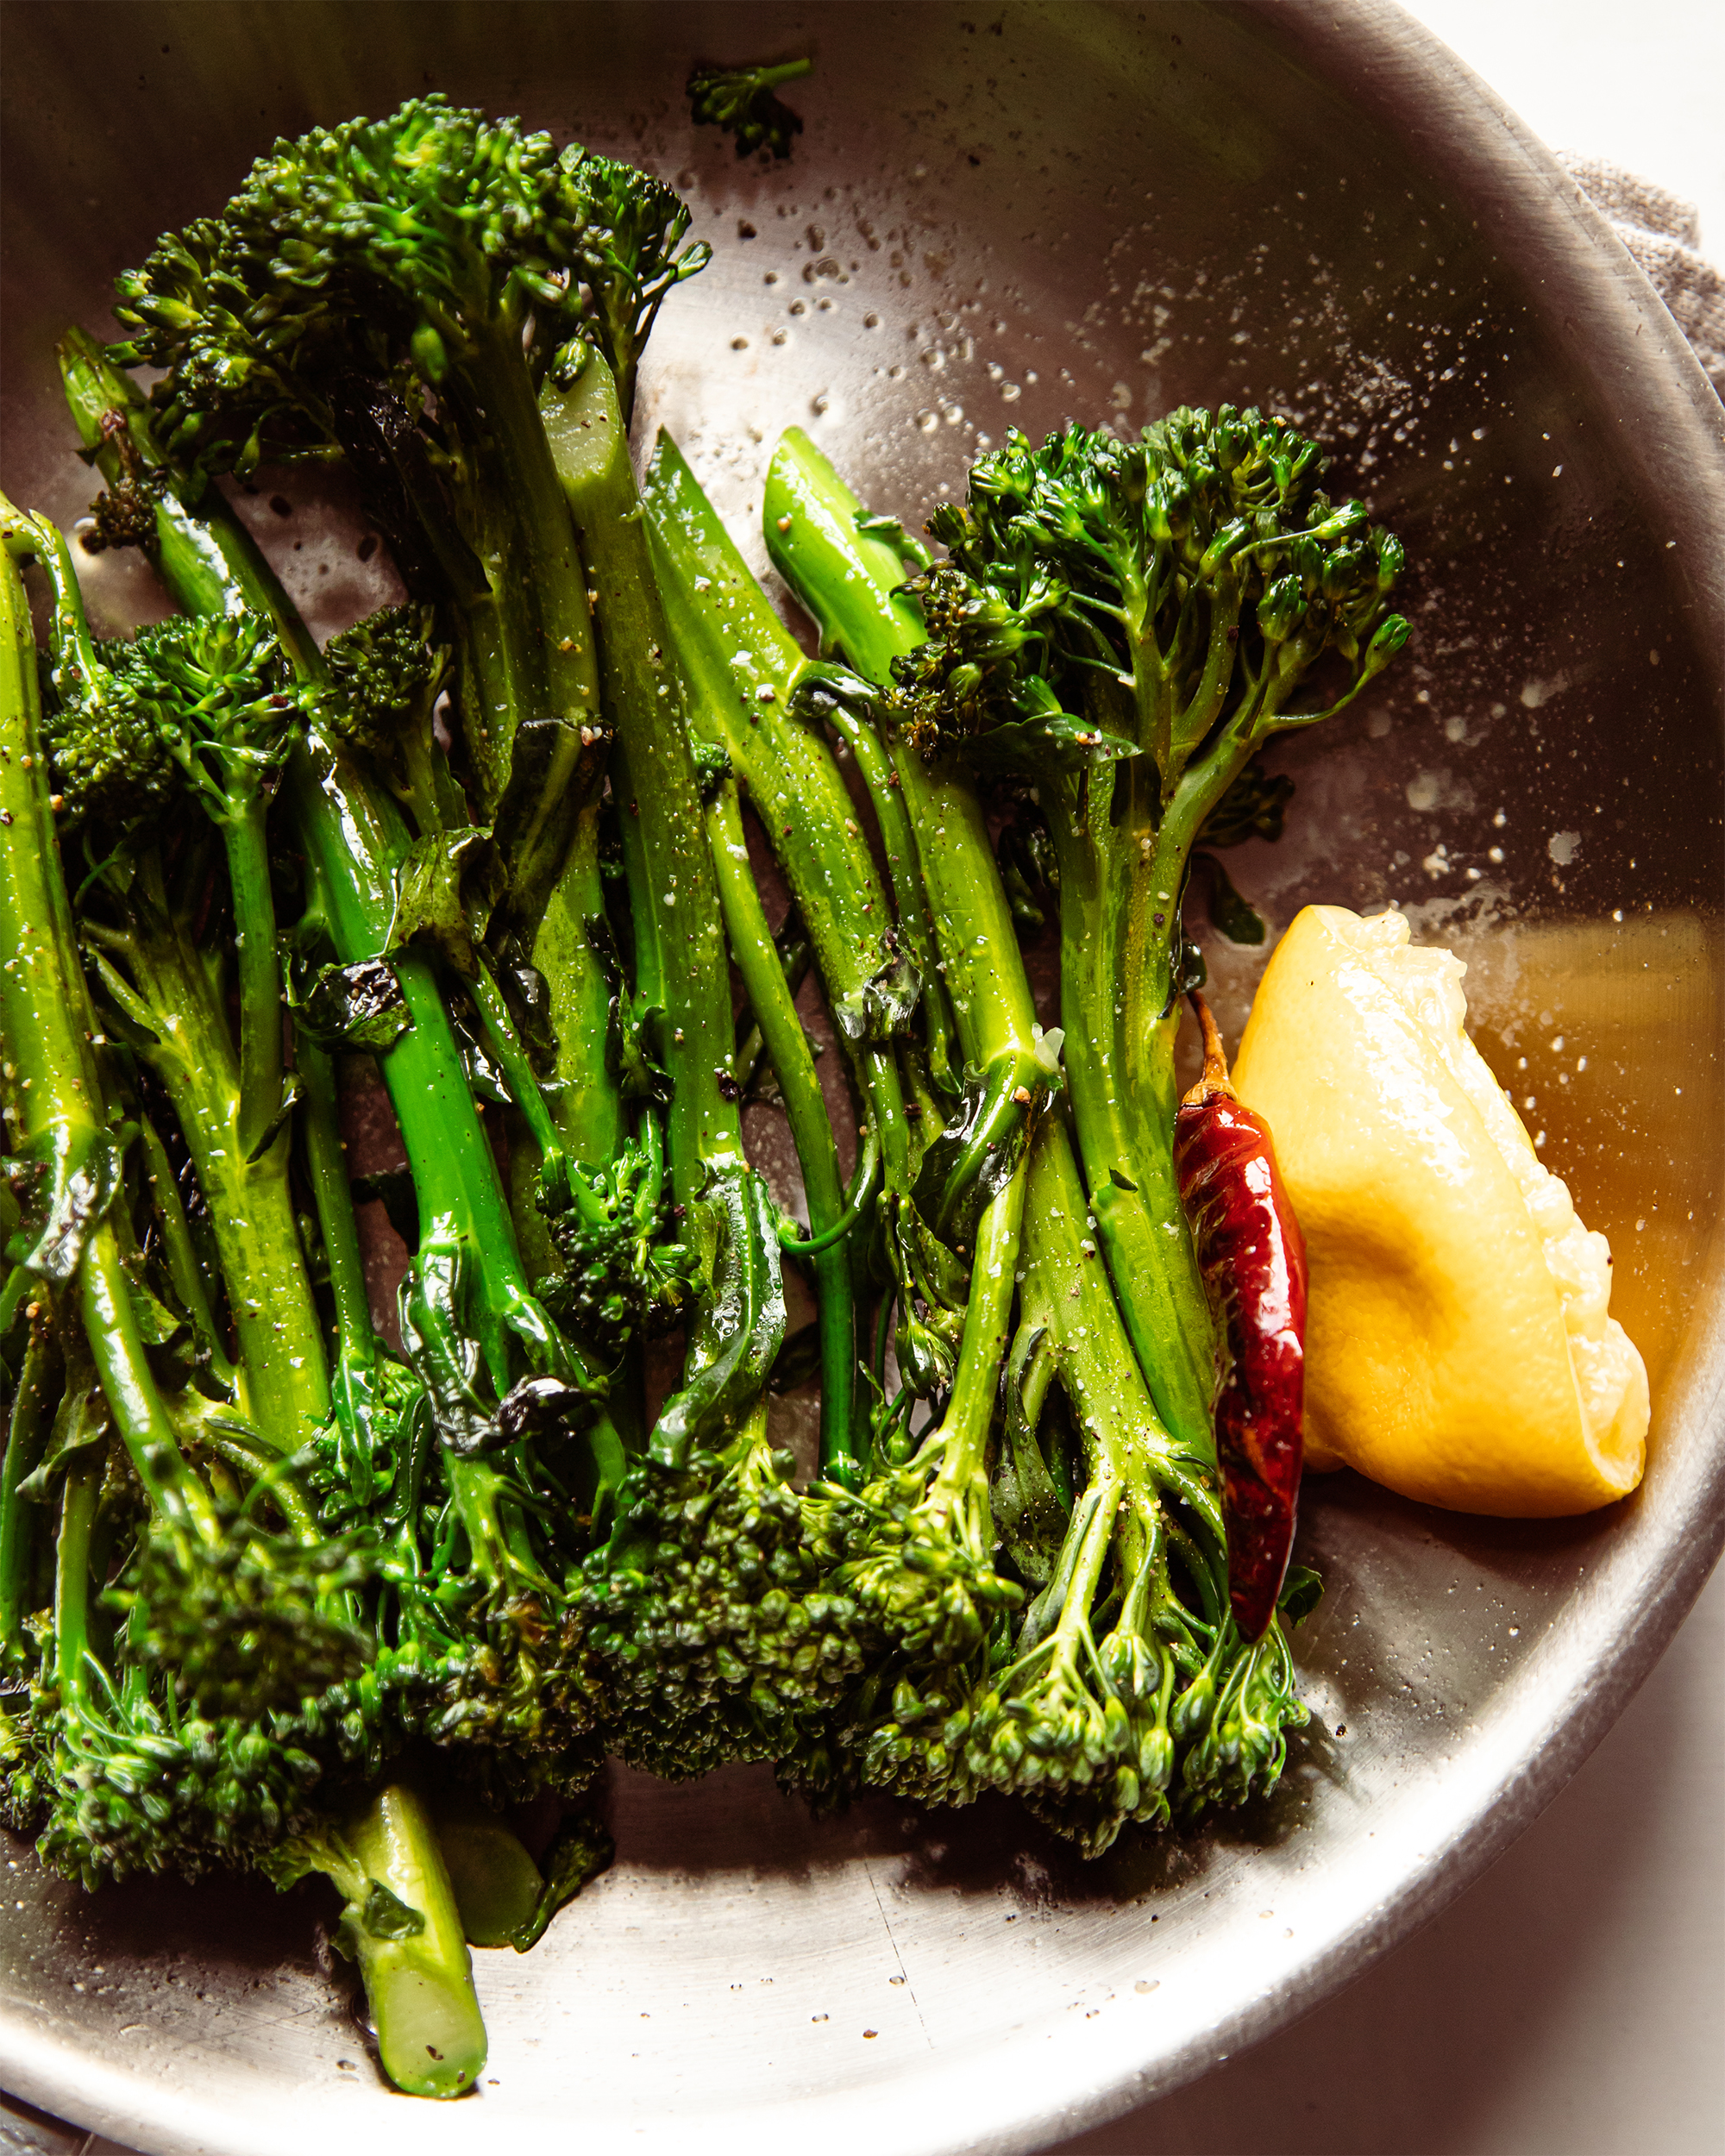 An overhead shot of cooked broccolini in a pan.